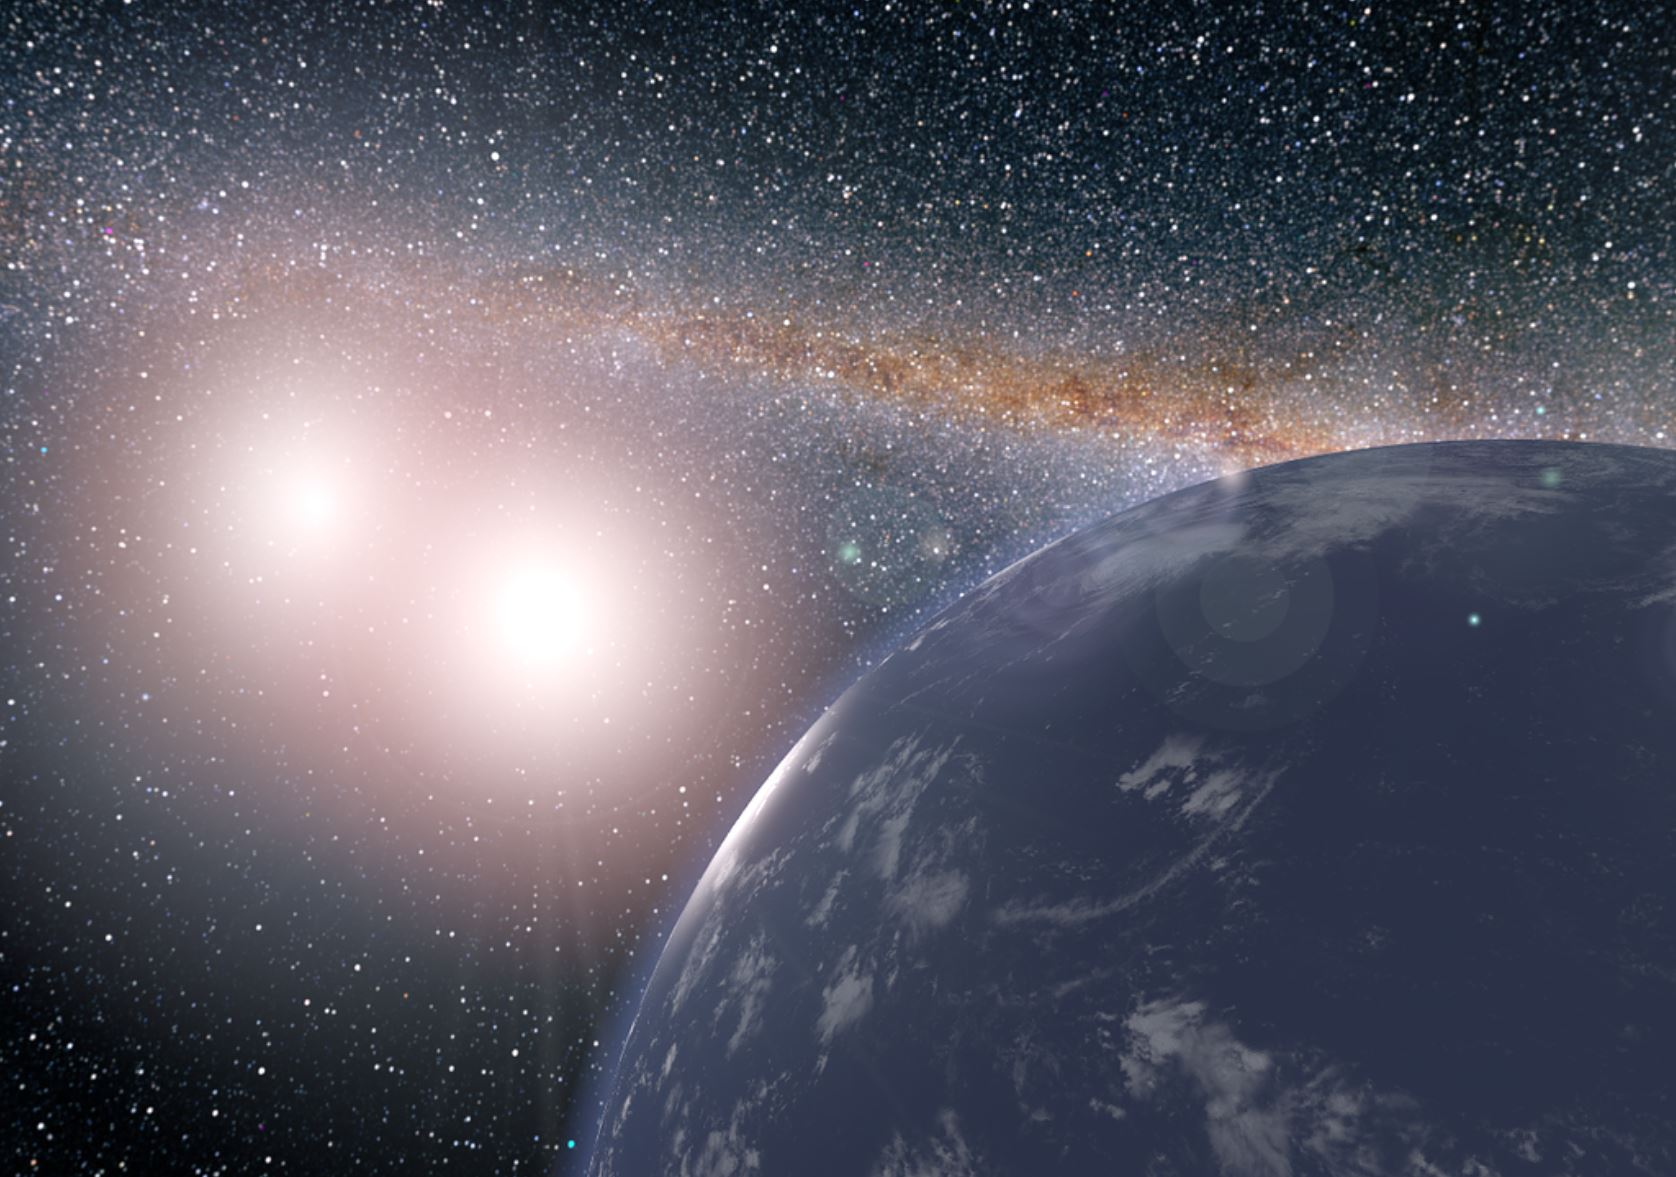 Astronomers Estimate the Number of Earth-like Planets That Could Host Life | Asgardia - The Space Nation